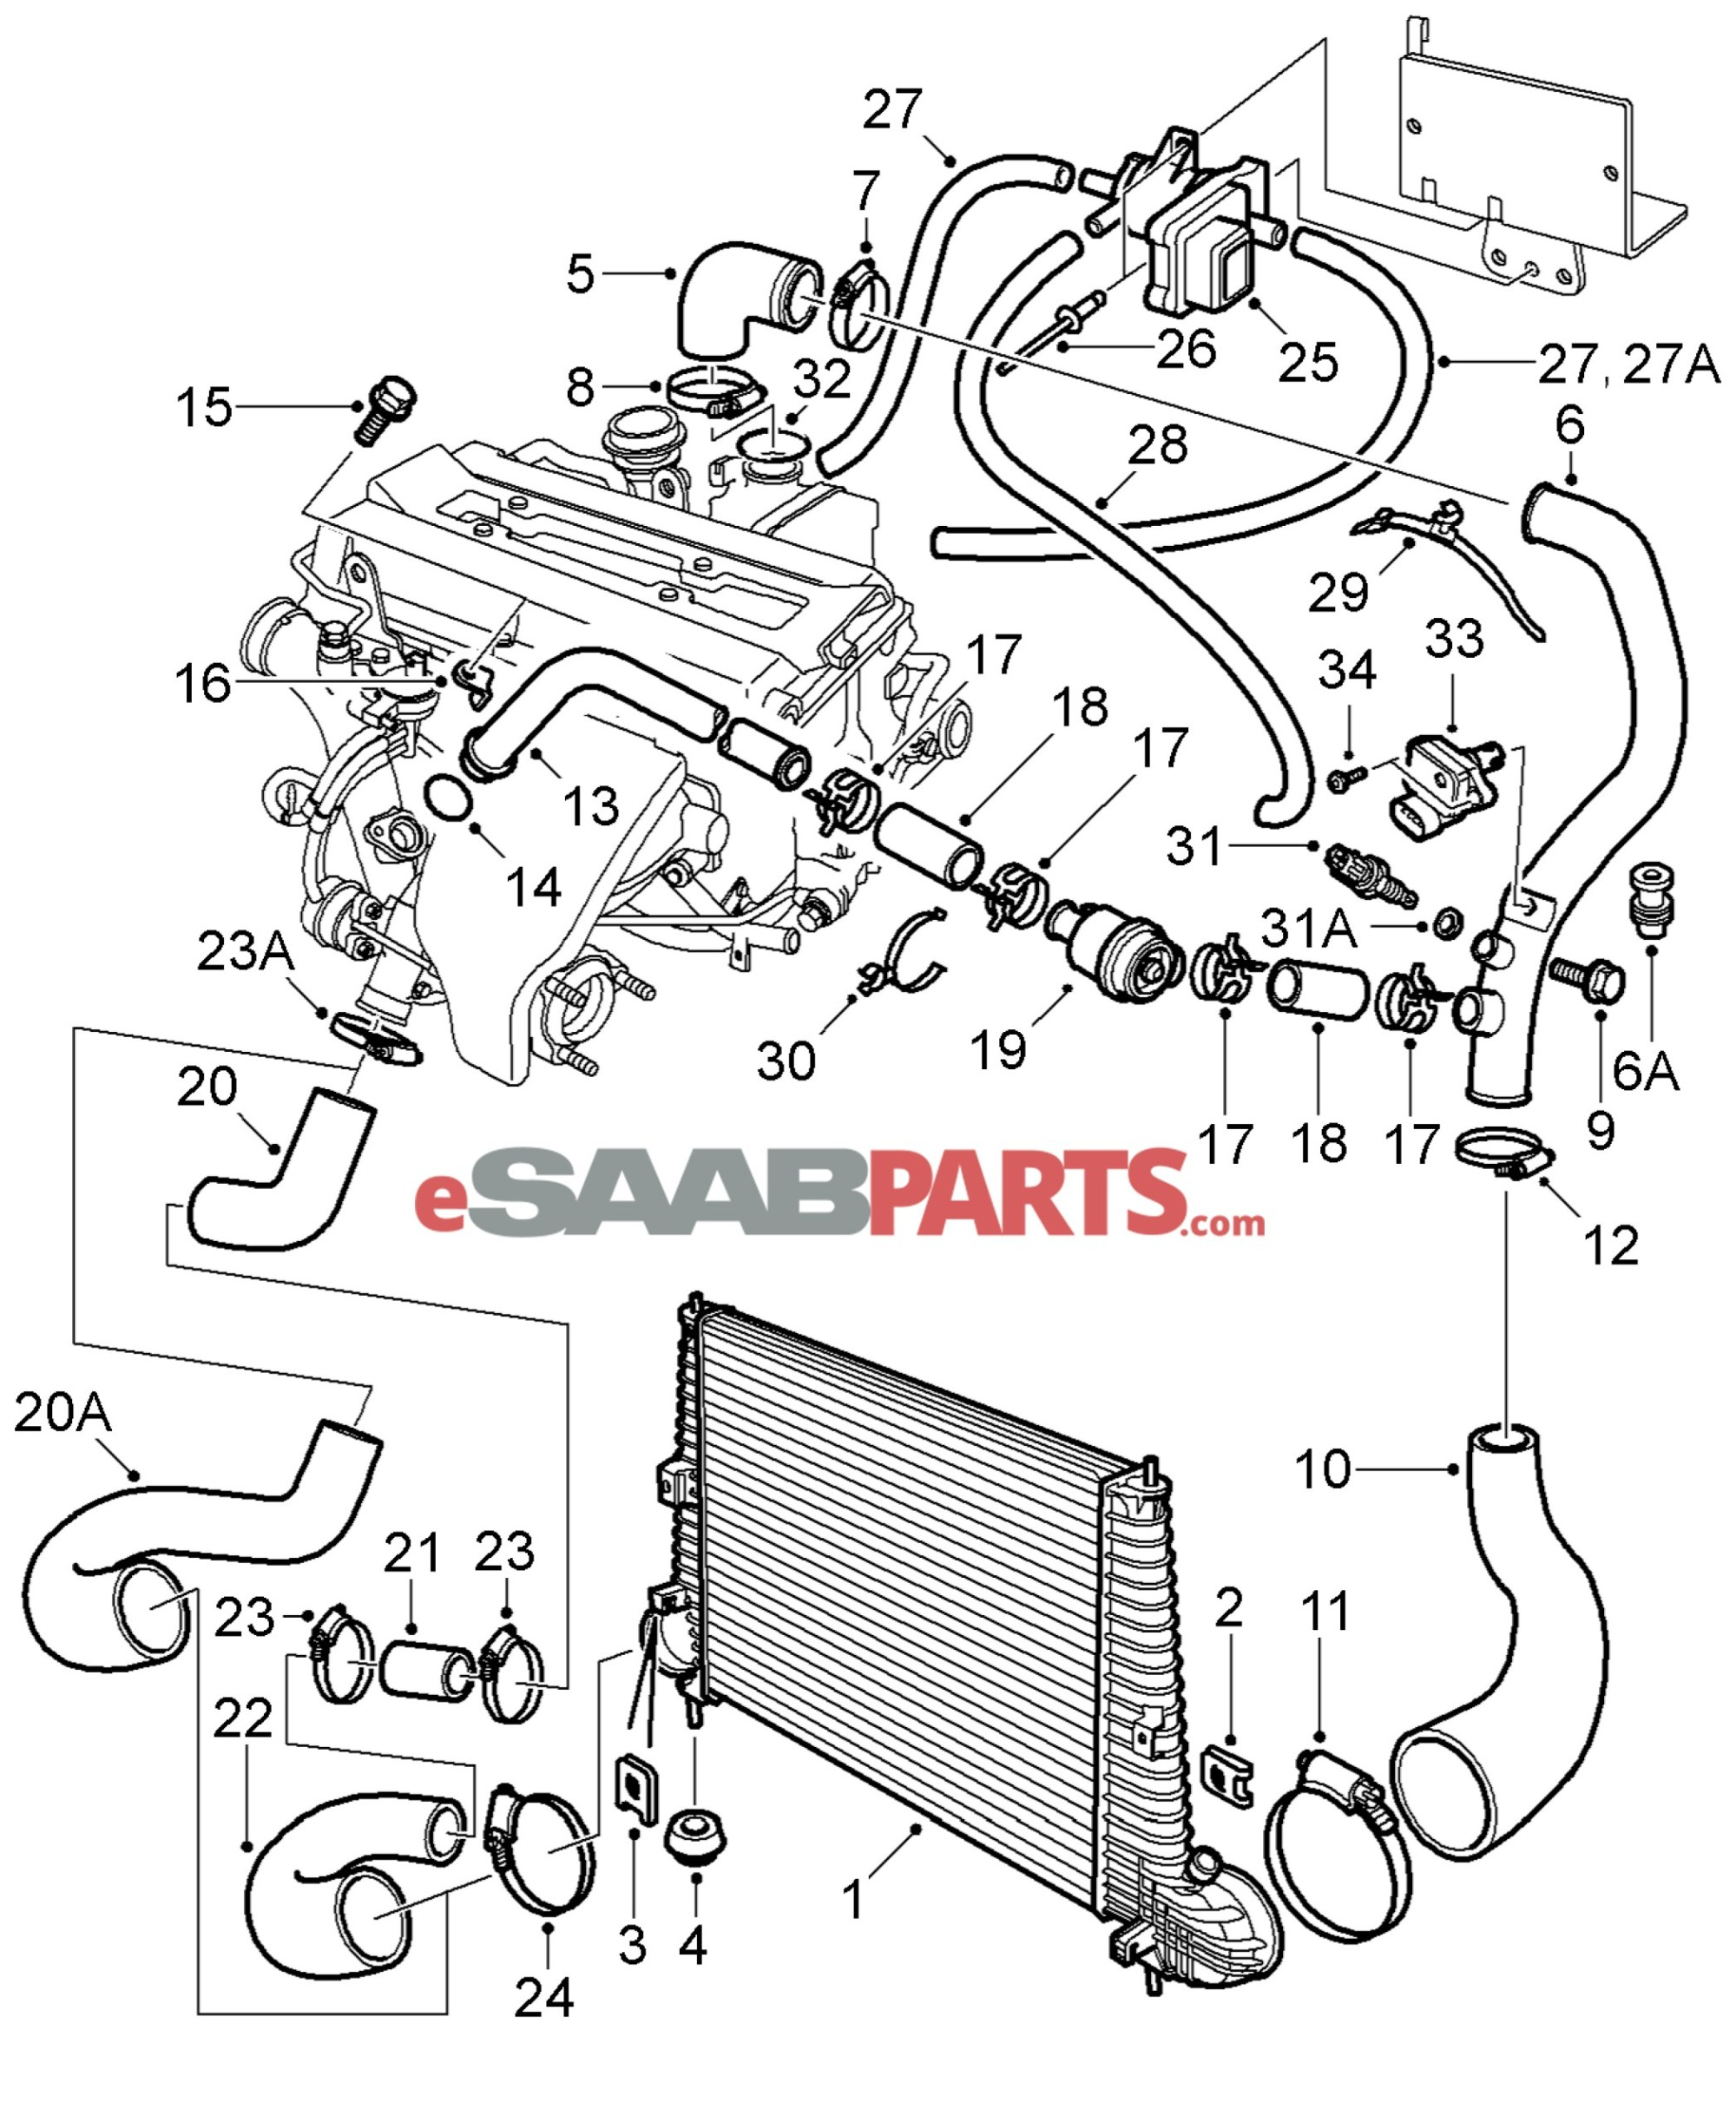 1993 Dodge Engine Diagram Ninja 500r Wiring 1999 Saab 9 3 Hight Resolution Of Simple Post 2002 5